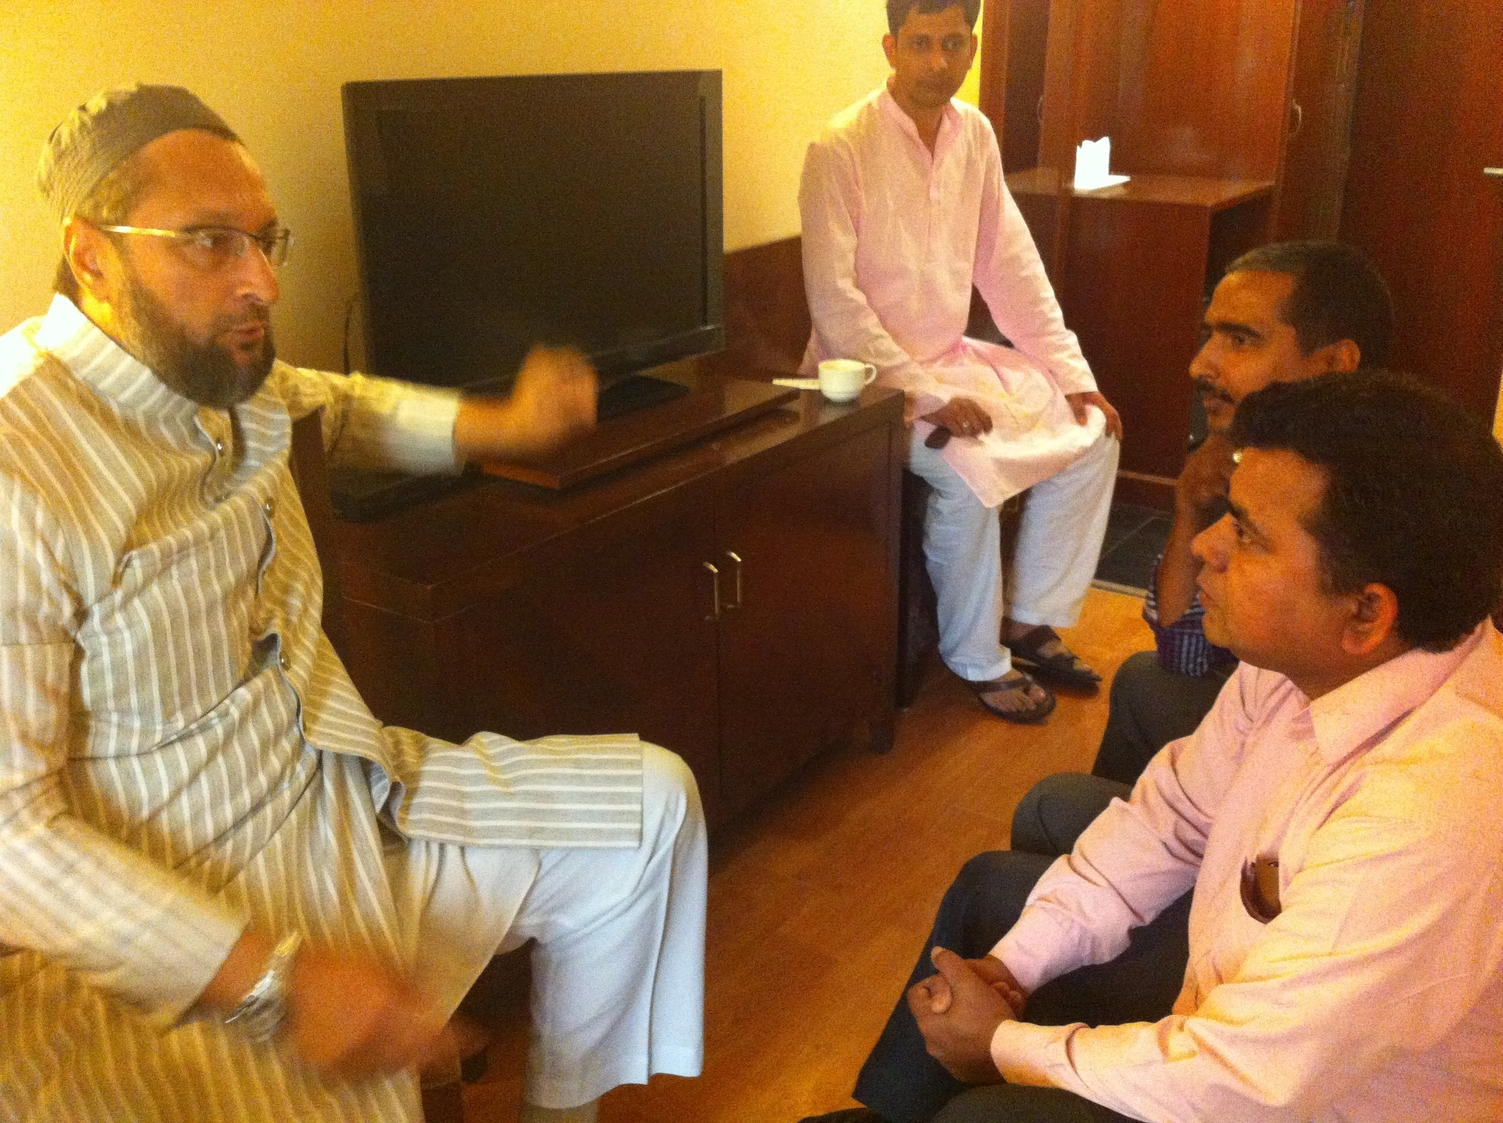 Asaduddin Owaisi with Irshadul Haque